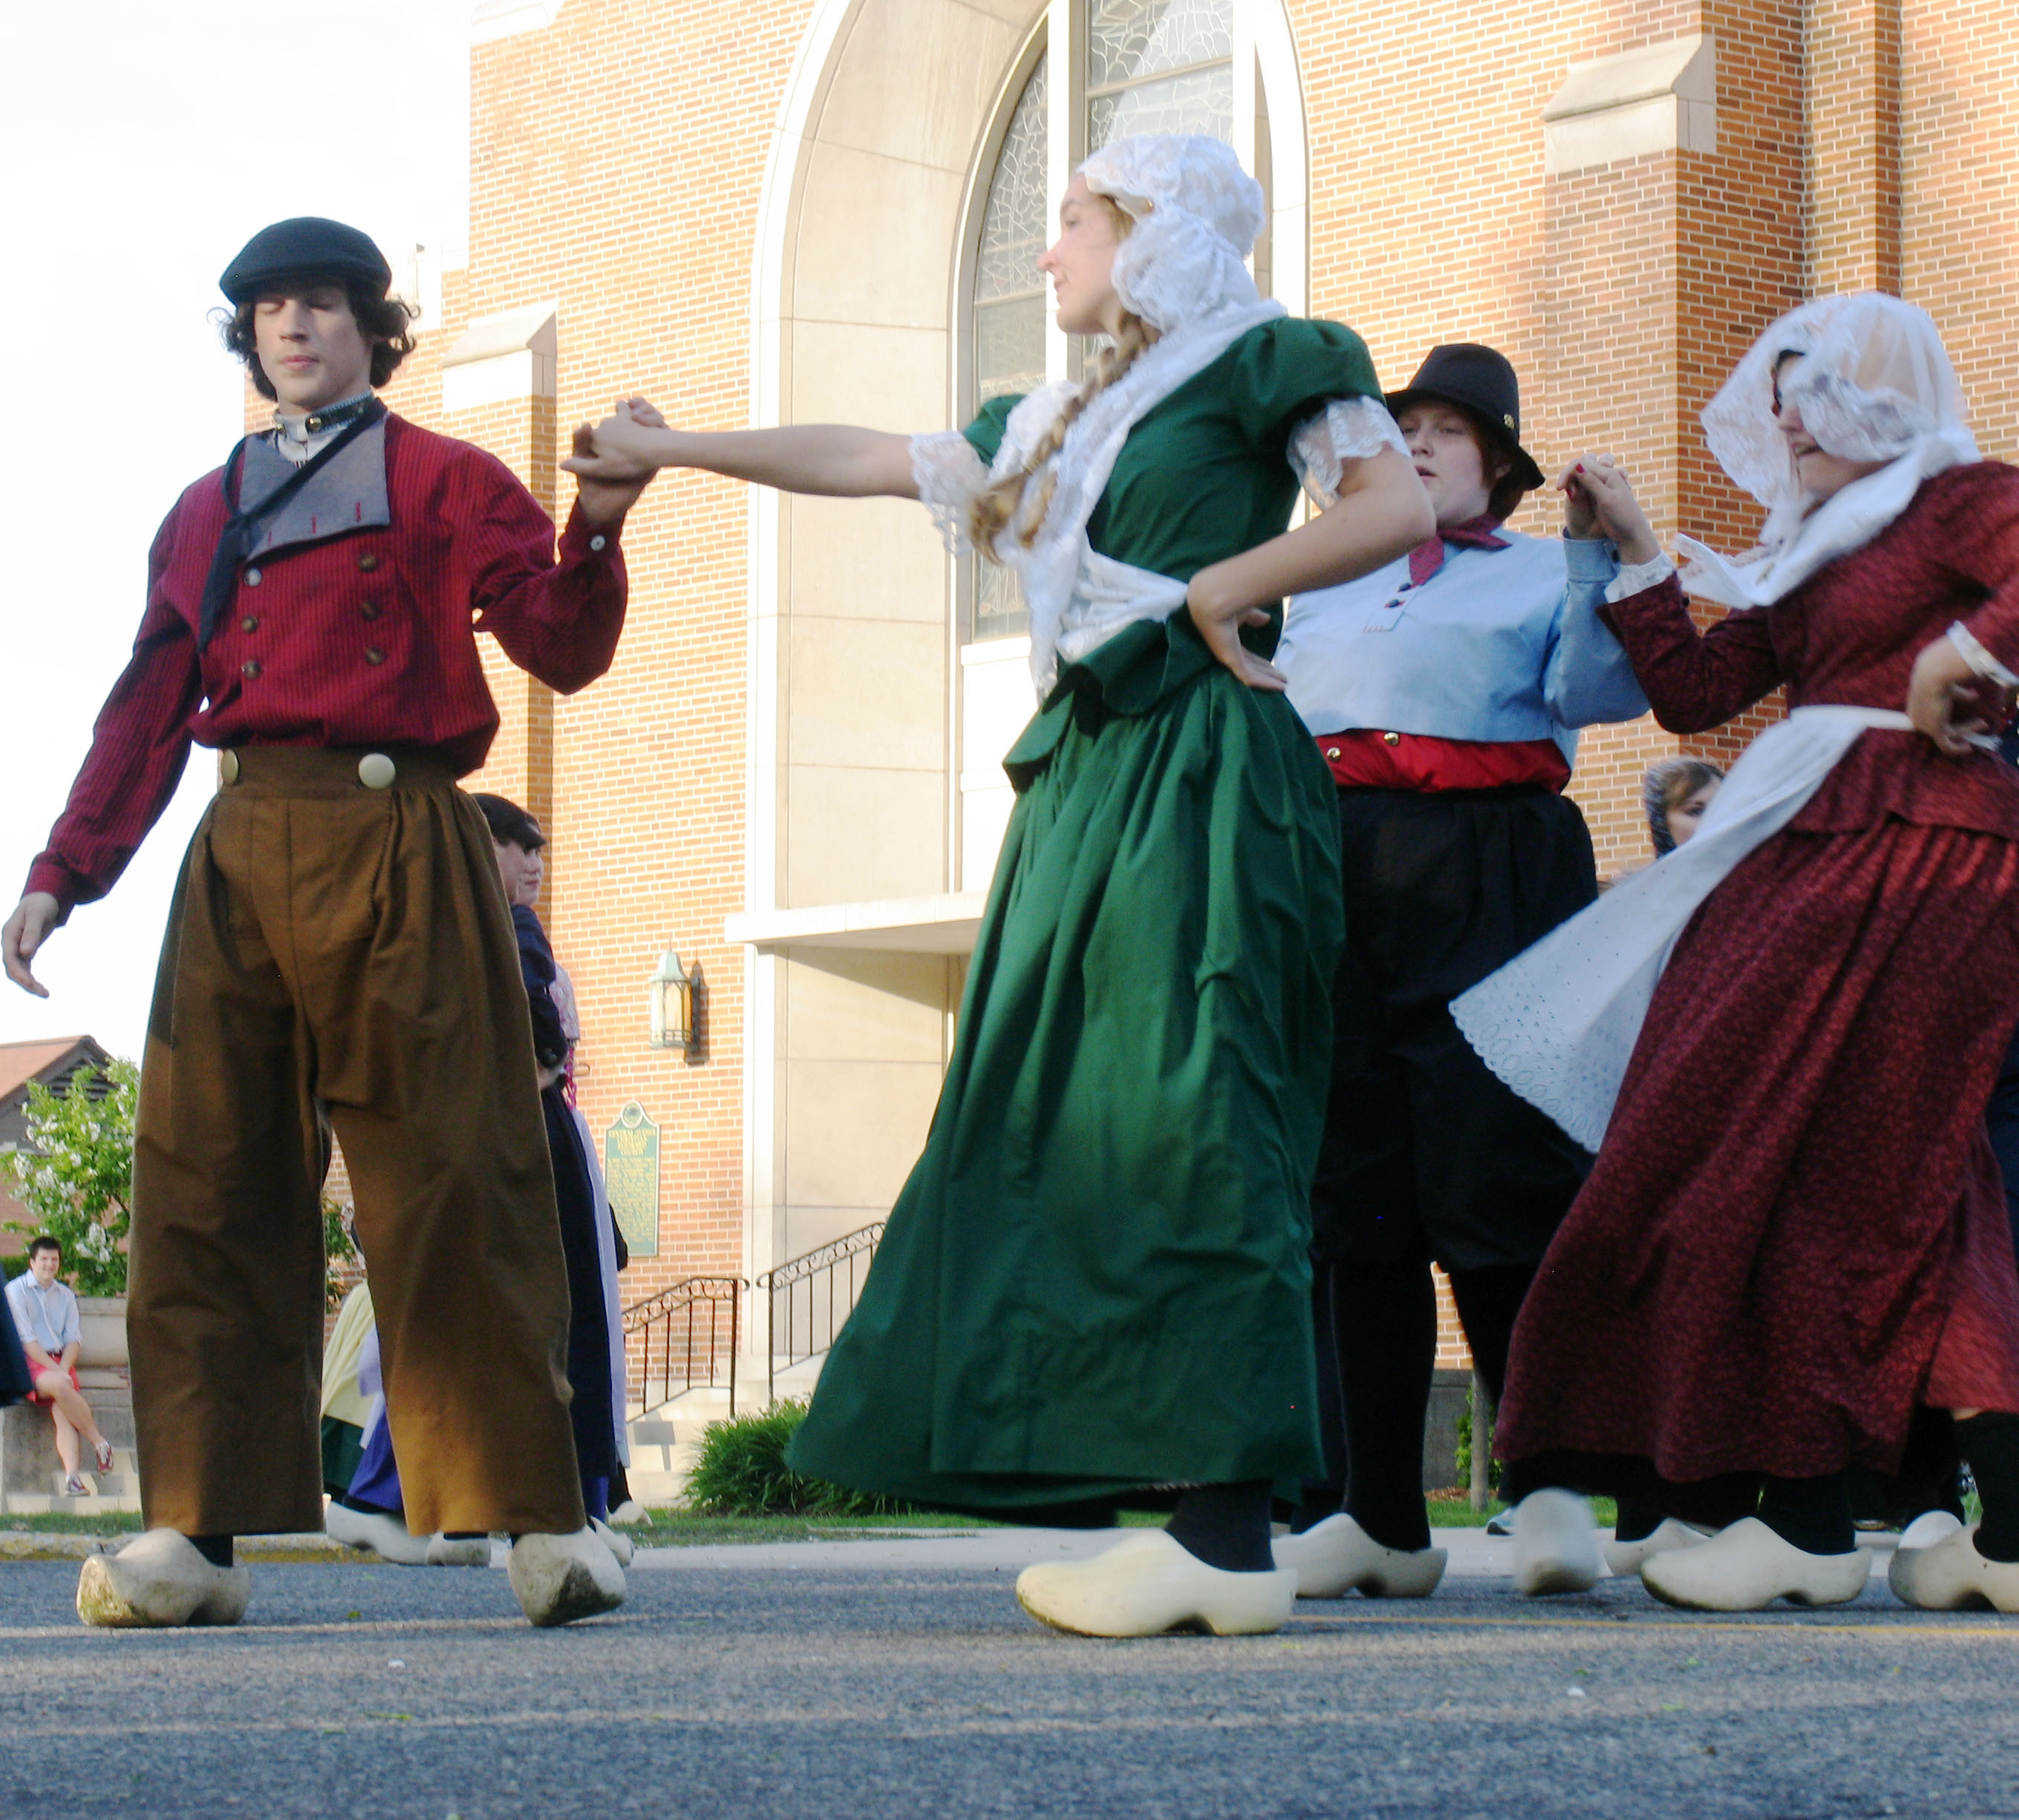 Wooden Shoe Like To See The Dutch Dancers? | Great Lakes Gazette